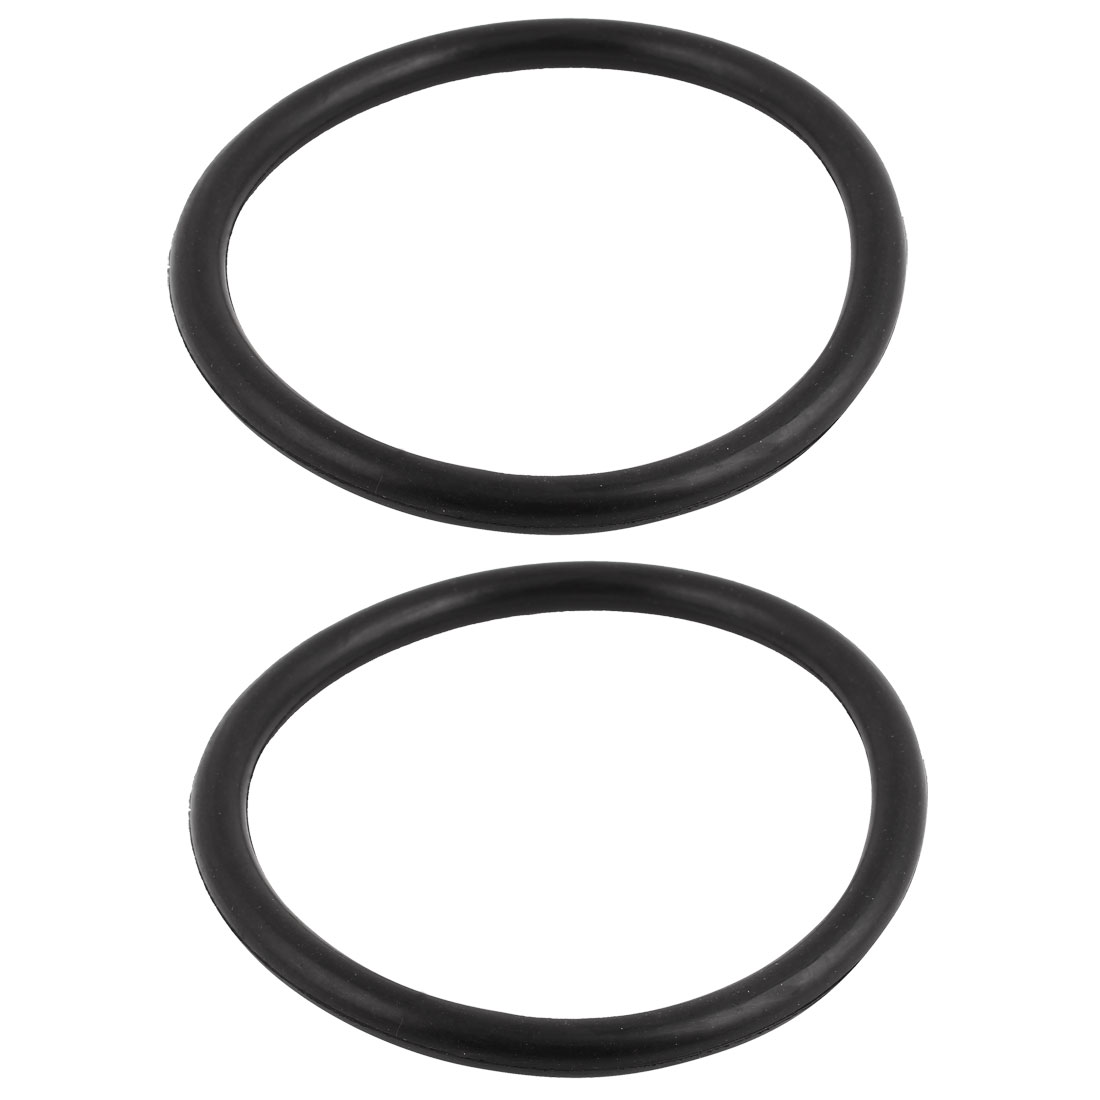 2Pcs Black Universal O-Ring 115mm x 8.6mm BUNA-N Material Oil Seal Washers Grommets